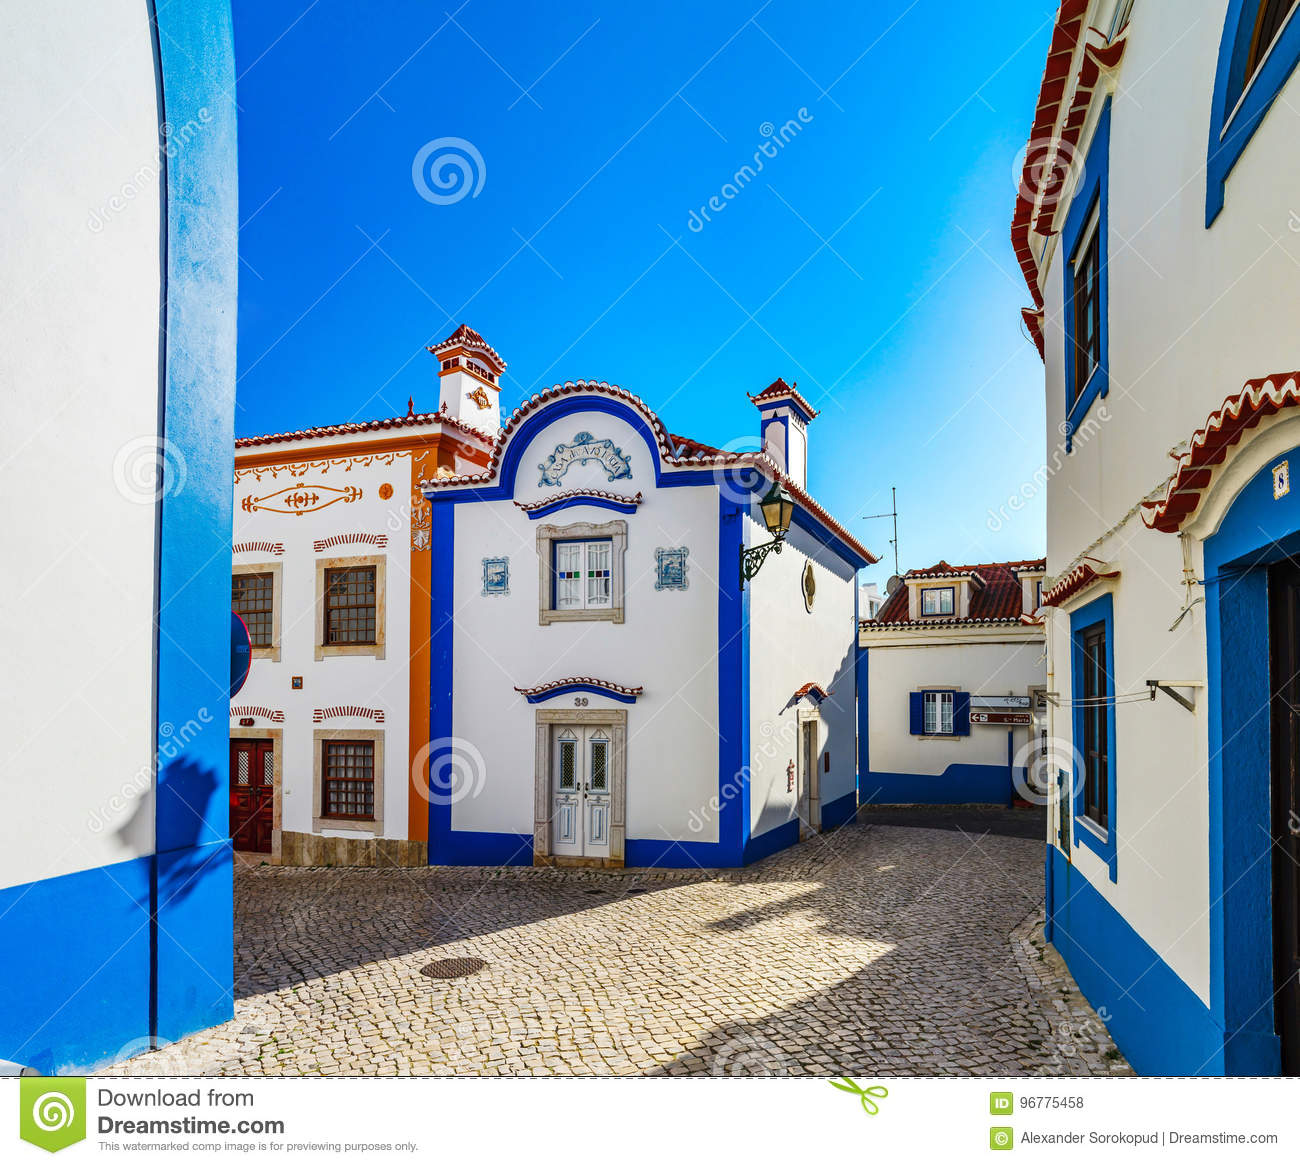 Blue color on the sky and buildings of old city Ericeira